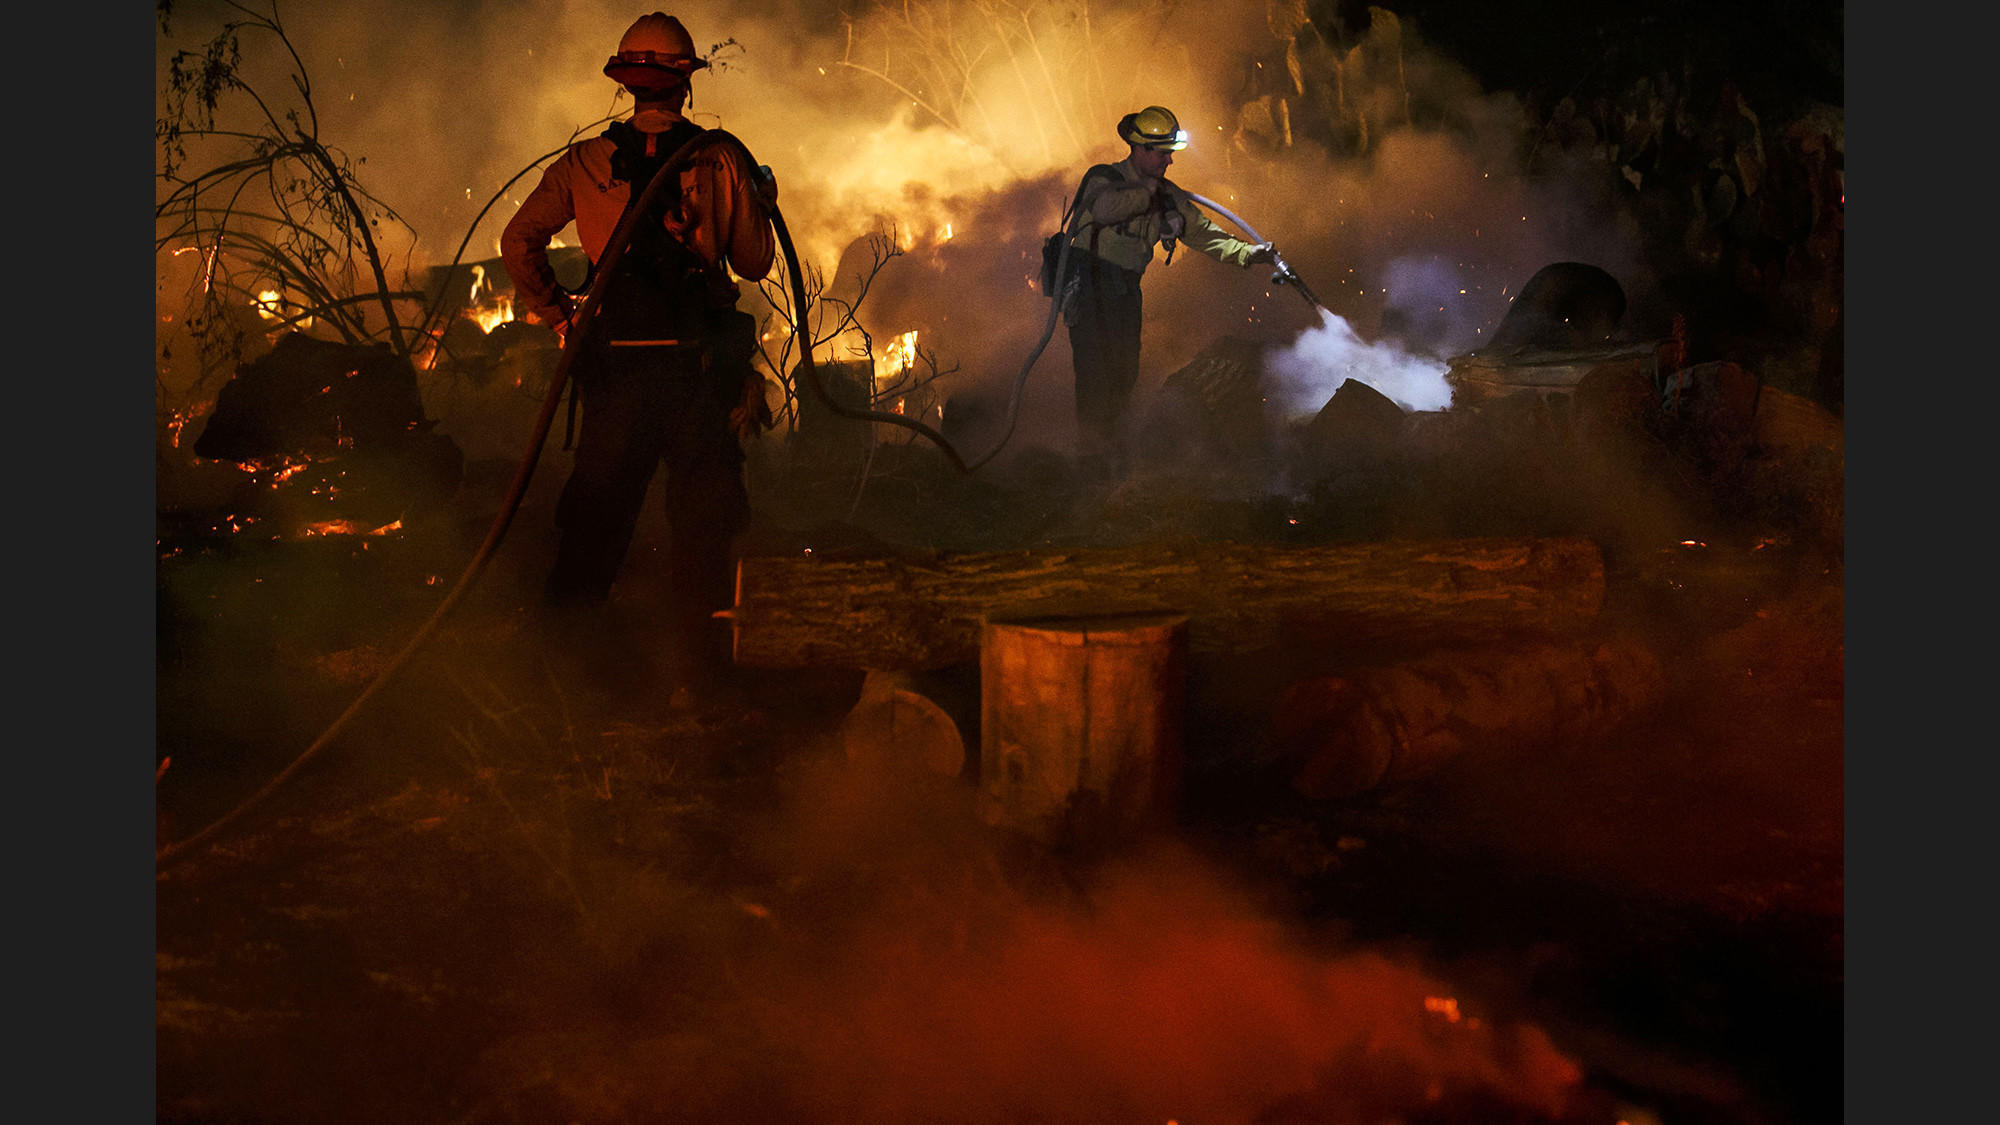 Lessons from disastrous wine country fires helped in battling Southern California infernos